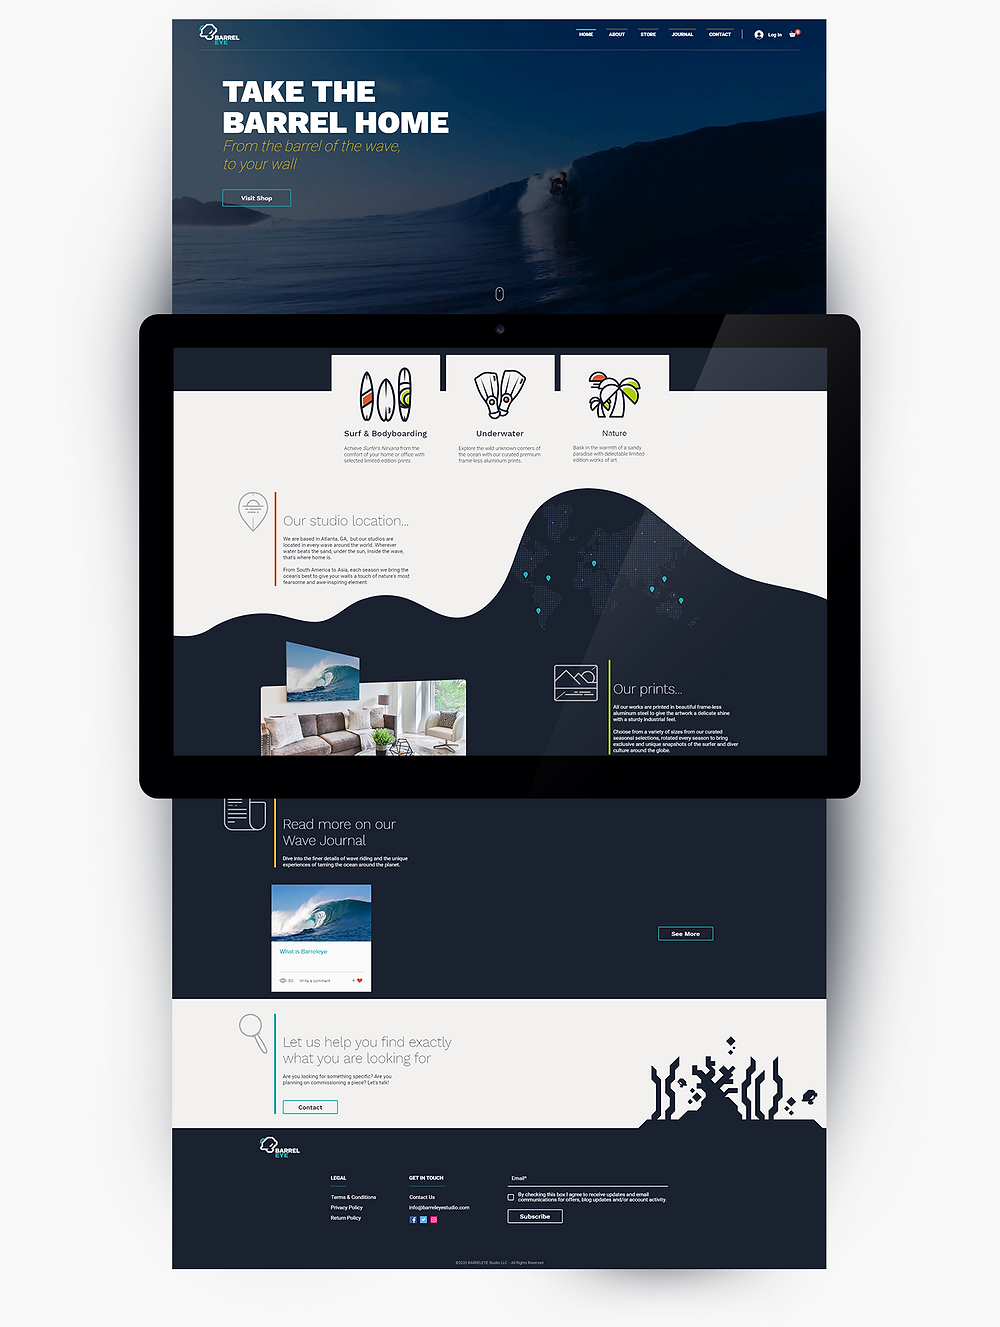 dieresis, logo, branding agency, graphic design studio, web design, icon, iconography, branding, brand identity, design, brand consulting, graphic design, barreleye, studio, surfing, scuba, ocean, waves